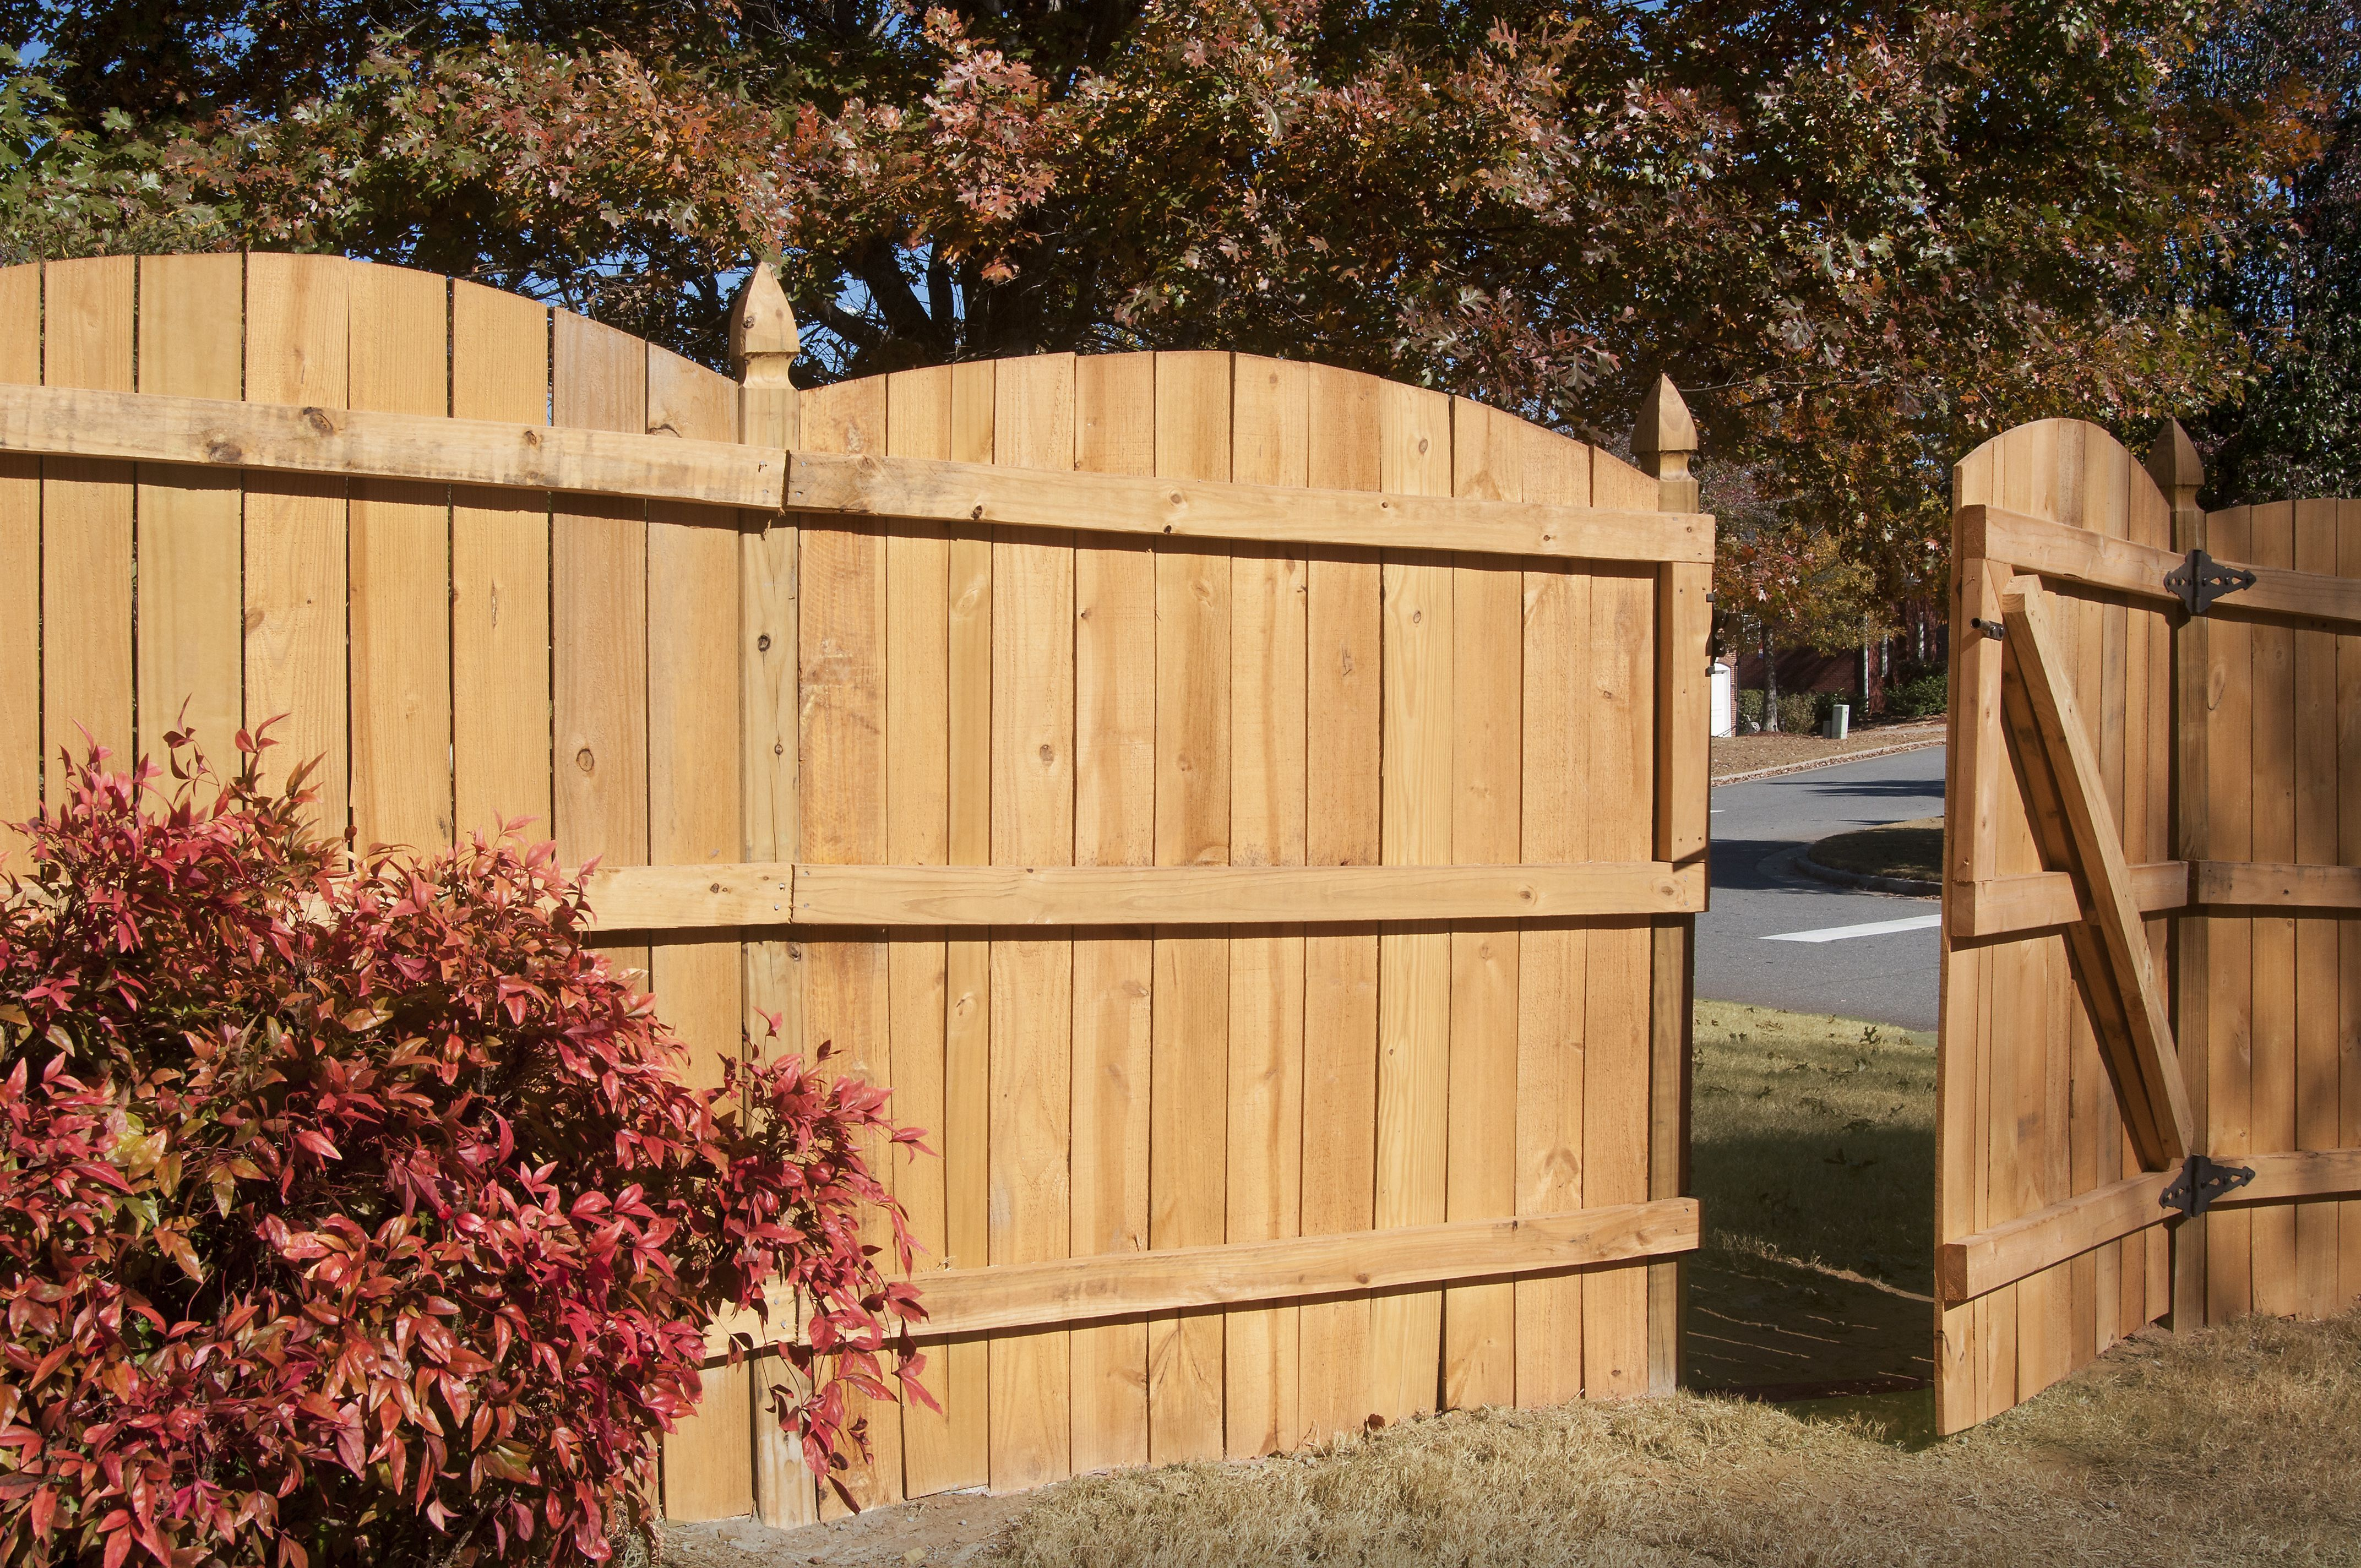 Positive Arch Privacy Fence Designed And Built By Atlanta Decking Fence Backyard Fences Fence Design Privacy Fence Designs